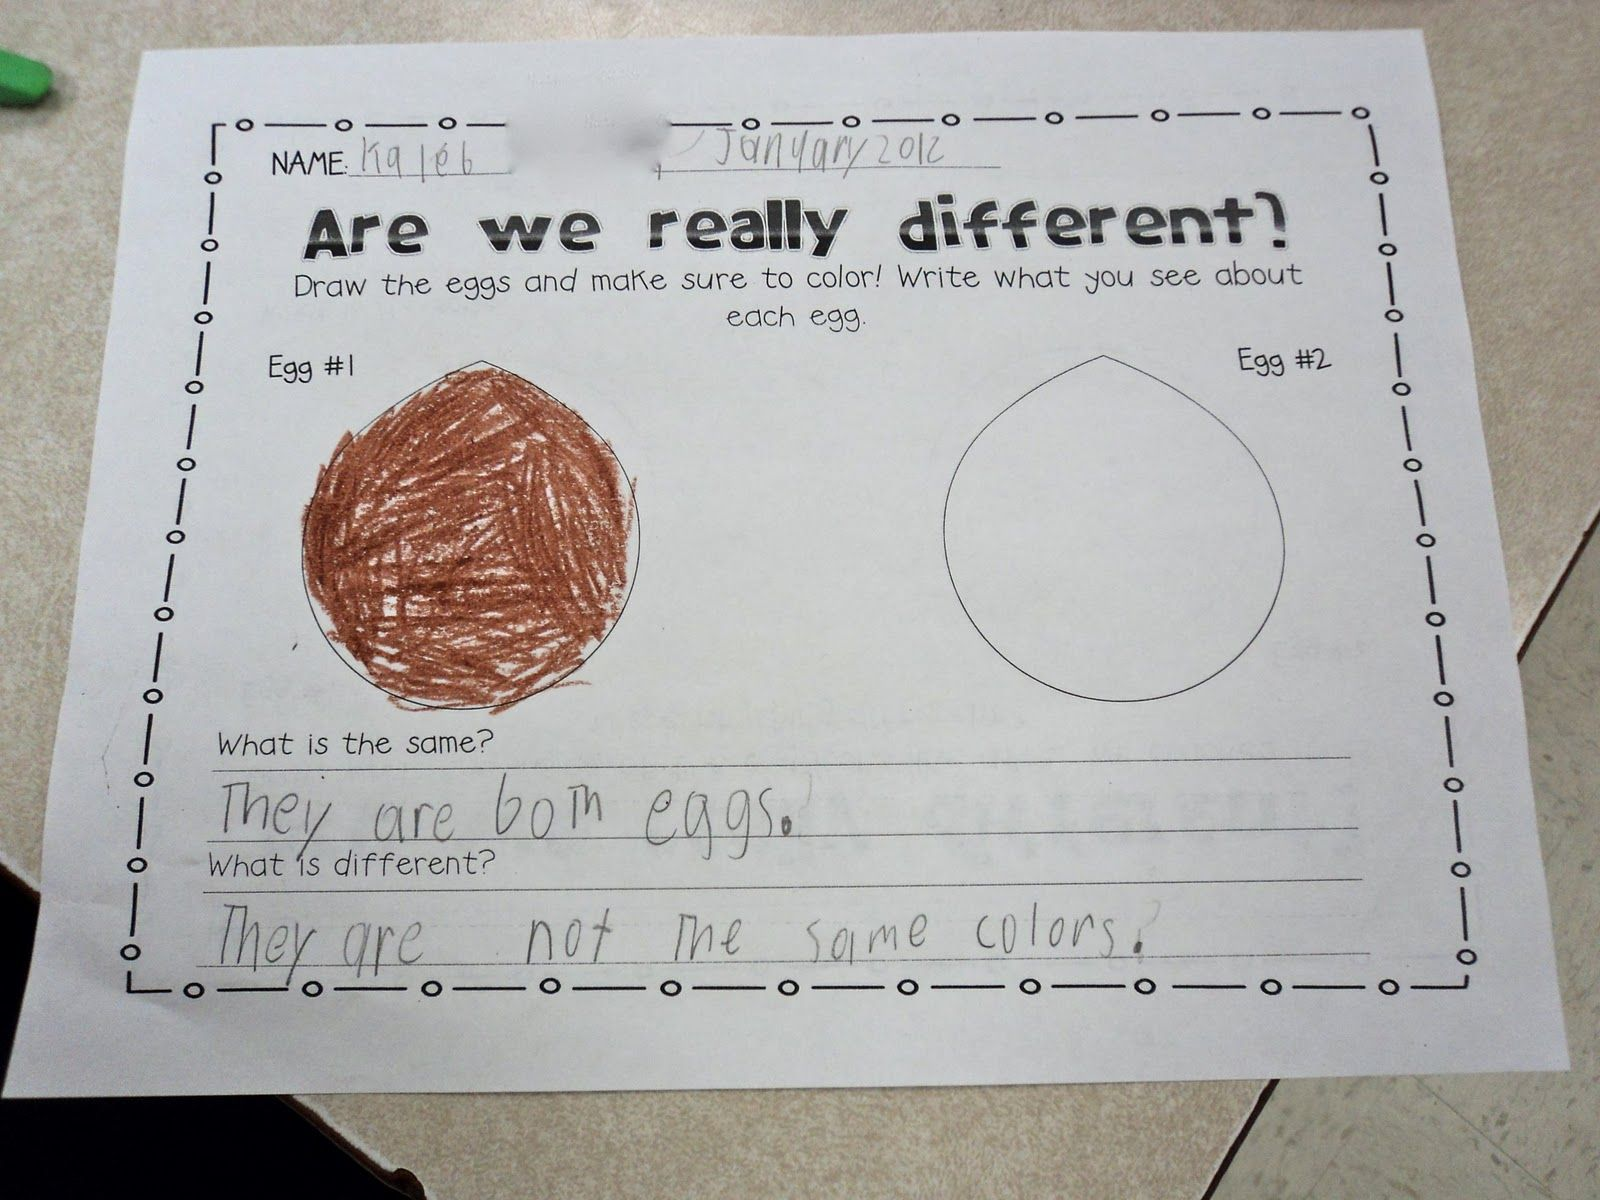 Worksheet To Go With Martin Luther King Egg Demonstration